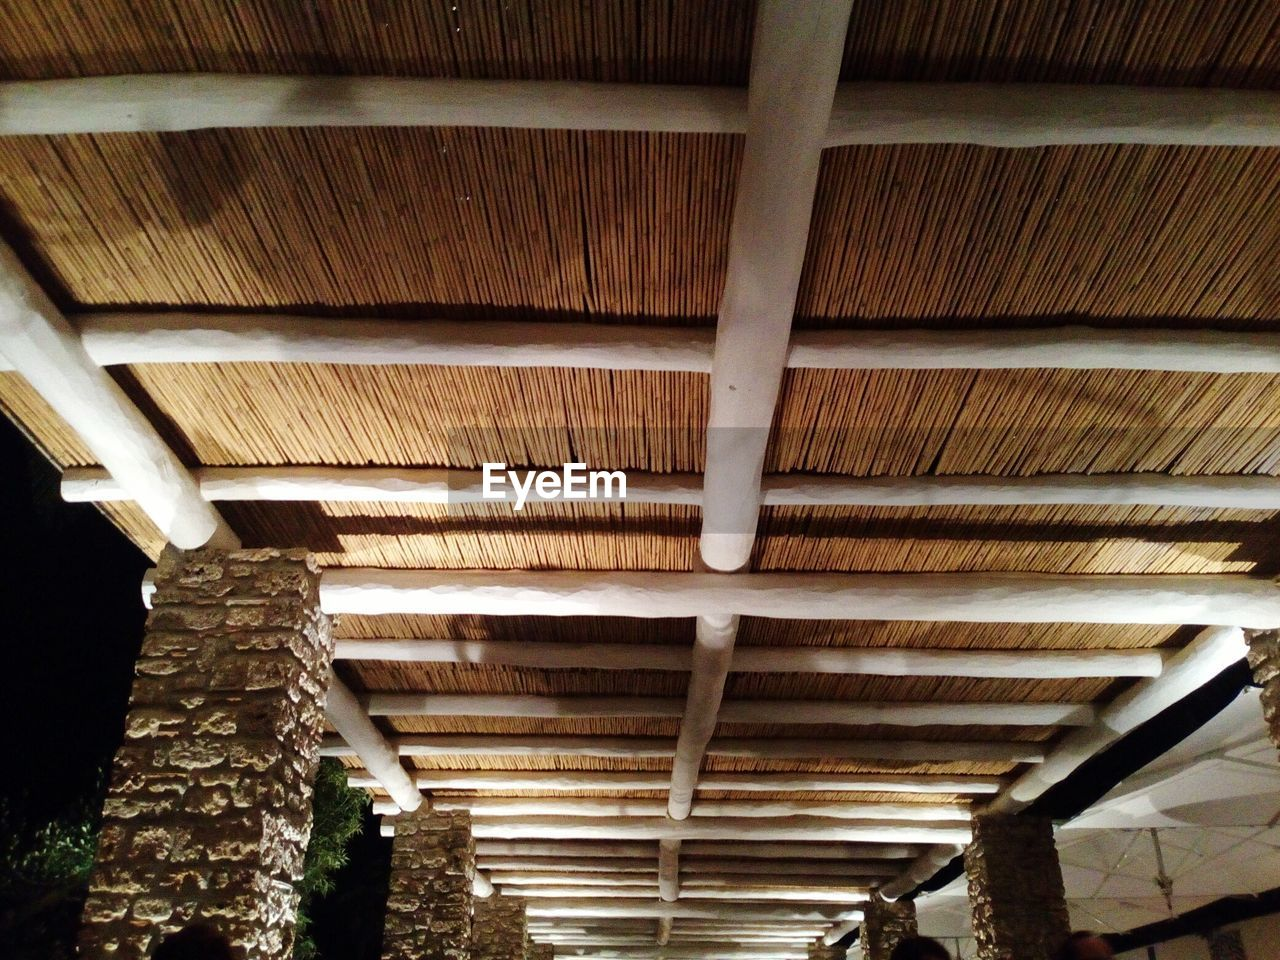 ceiling, roof beam, architecture, low angle view, indoors, built structure, no people, roof, illuminated, day, close-up